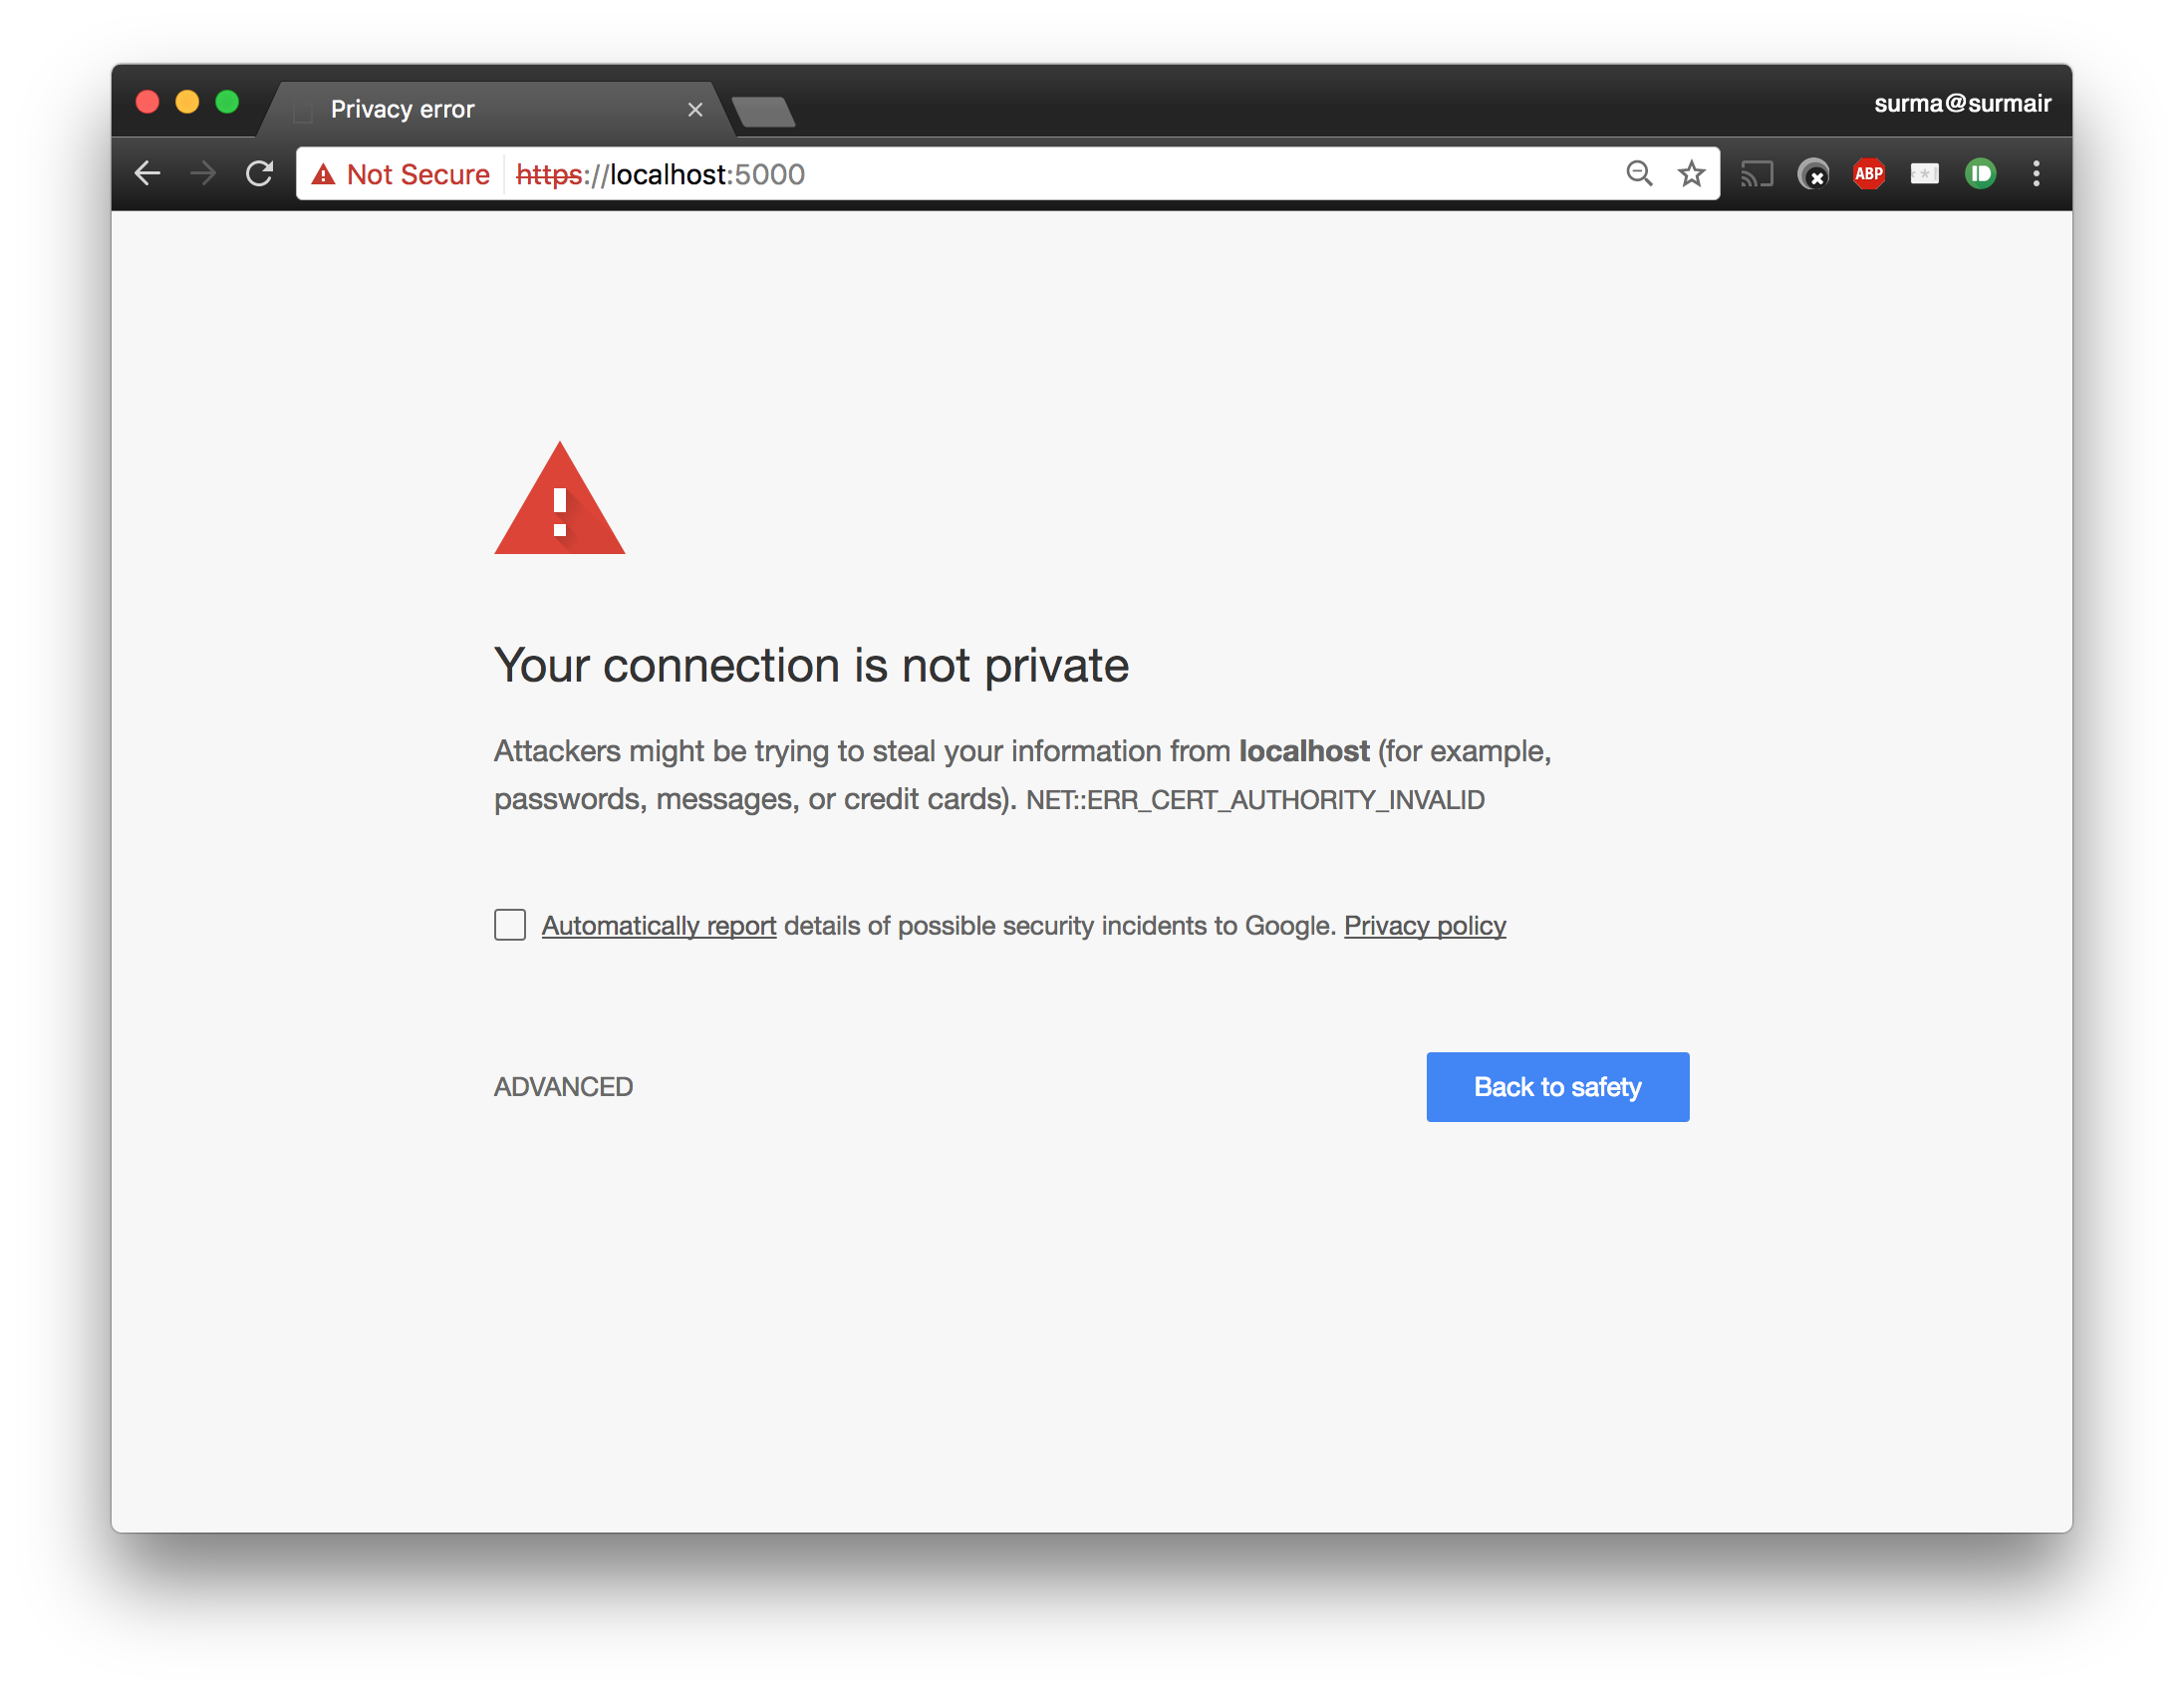 Chrome warning about an insecure certificate